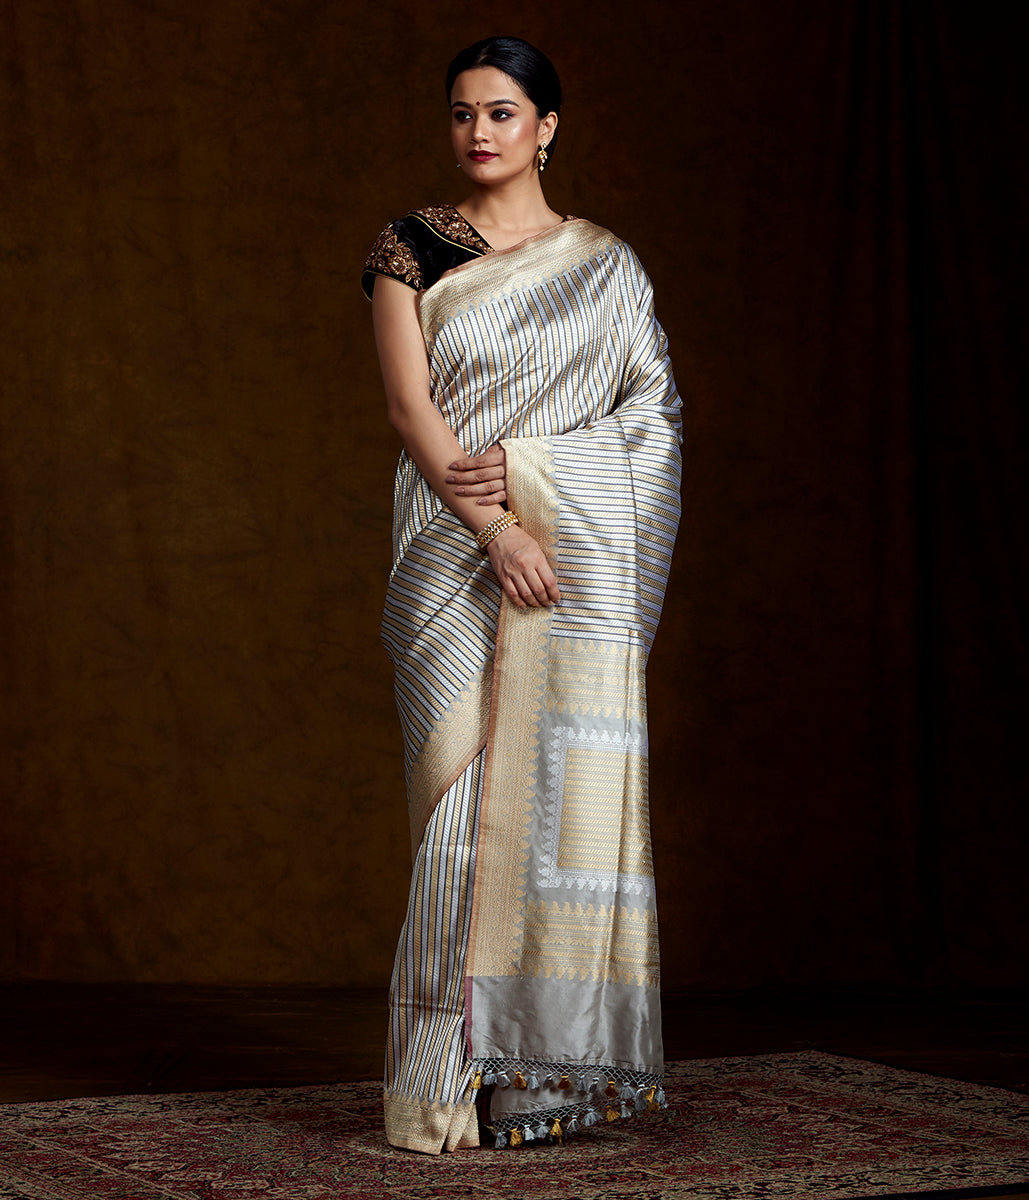 Grey and Silver Banarasi Kimkhab Saree with Black Detailing